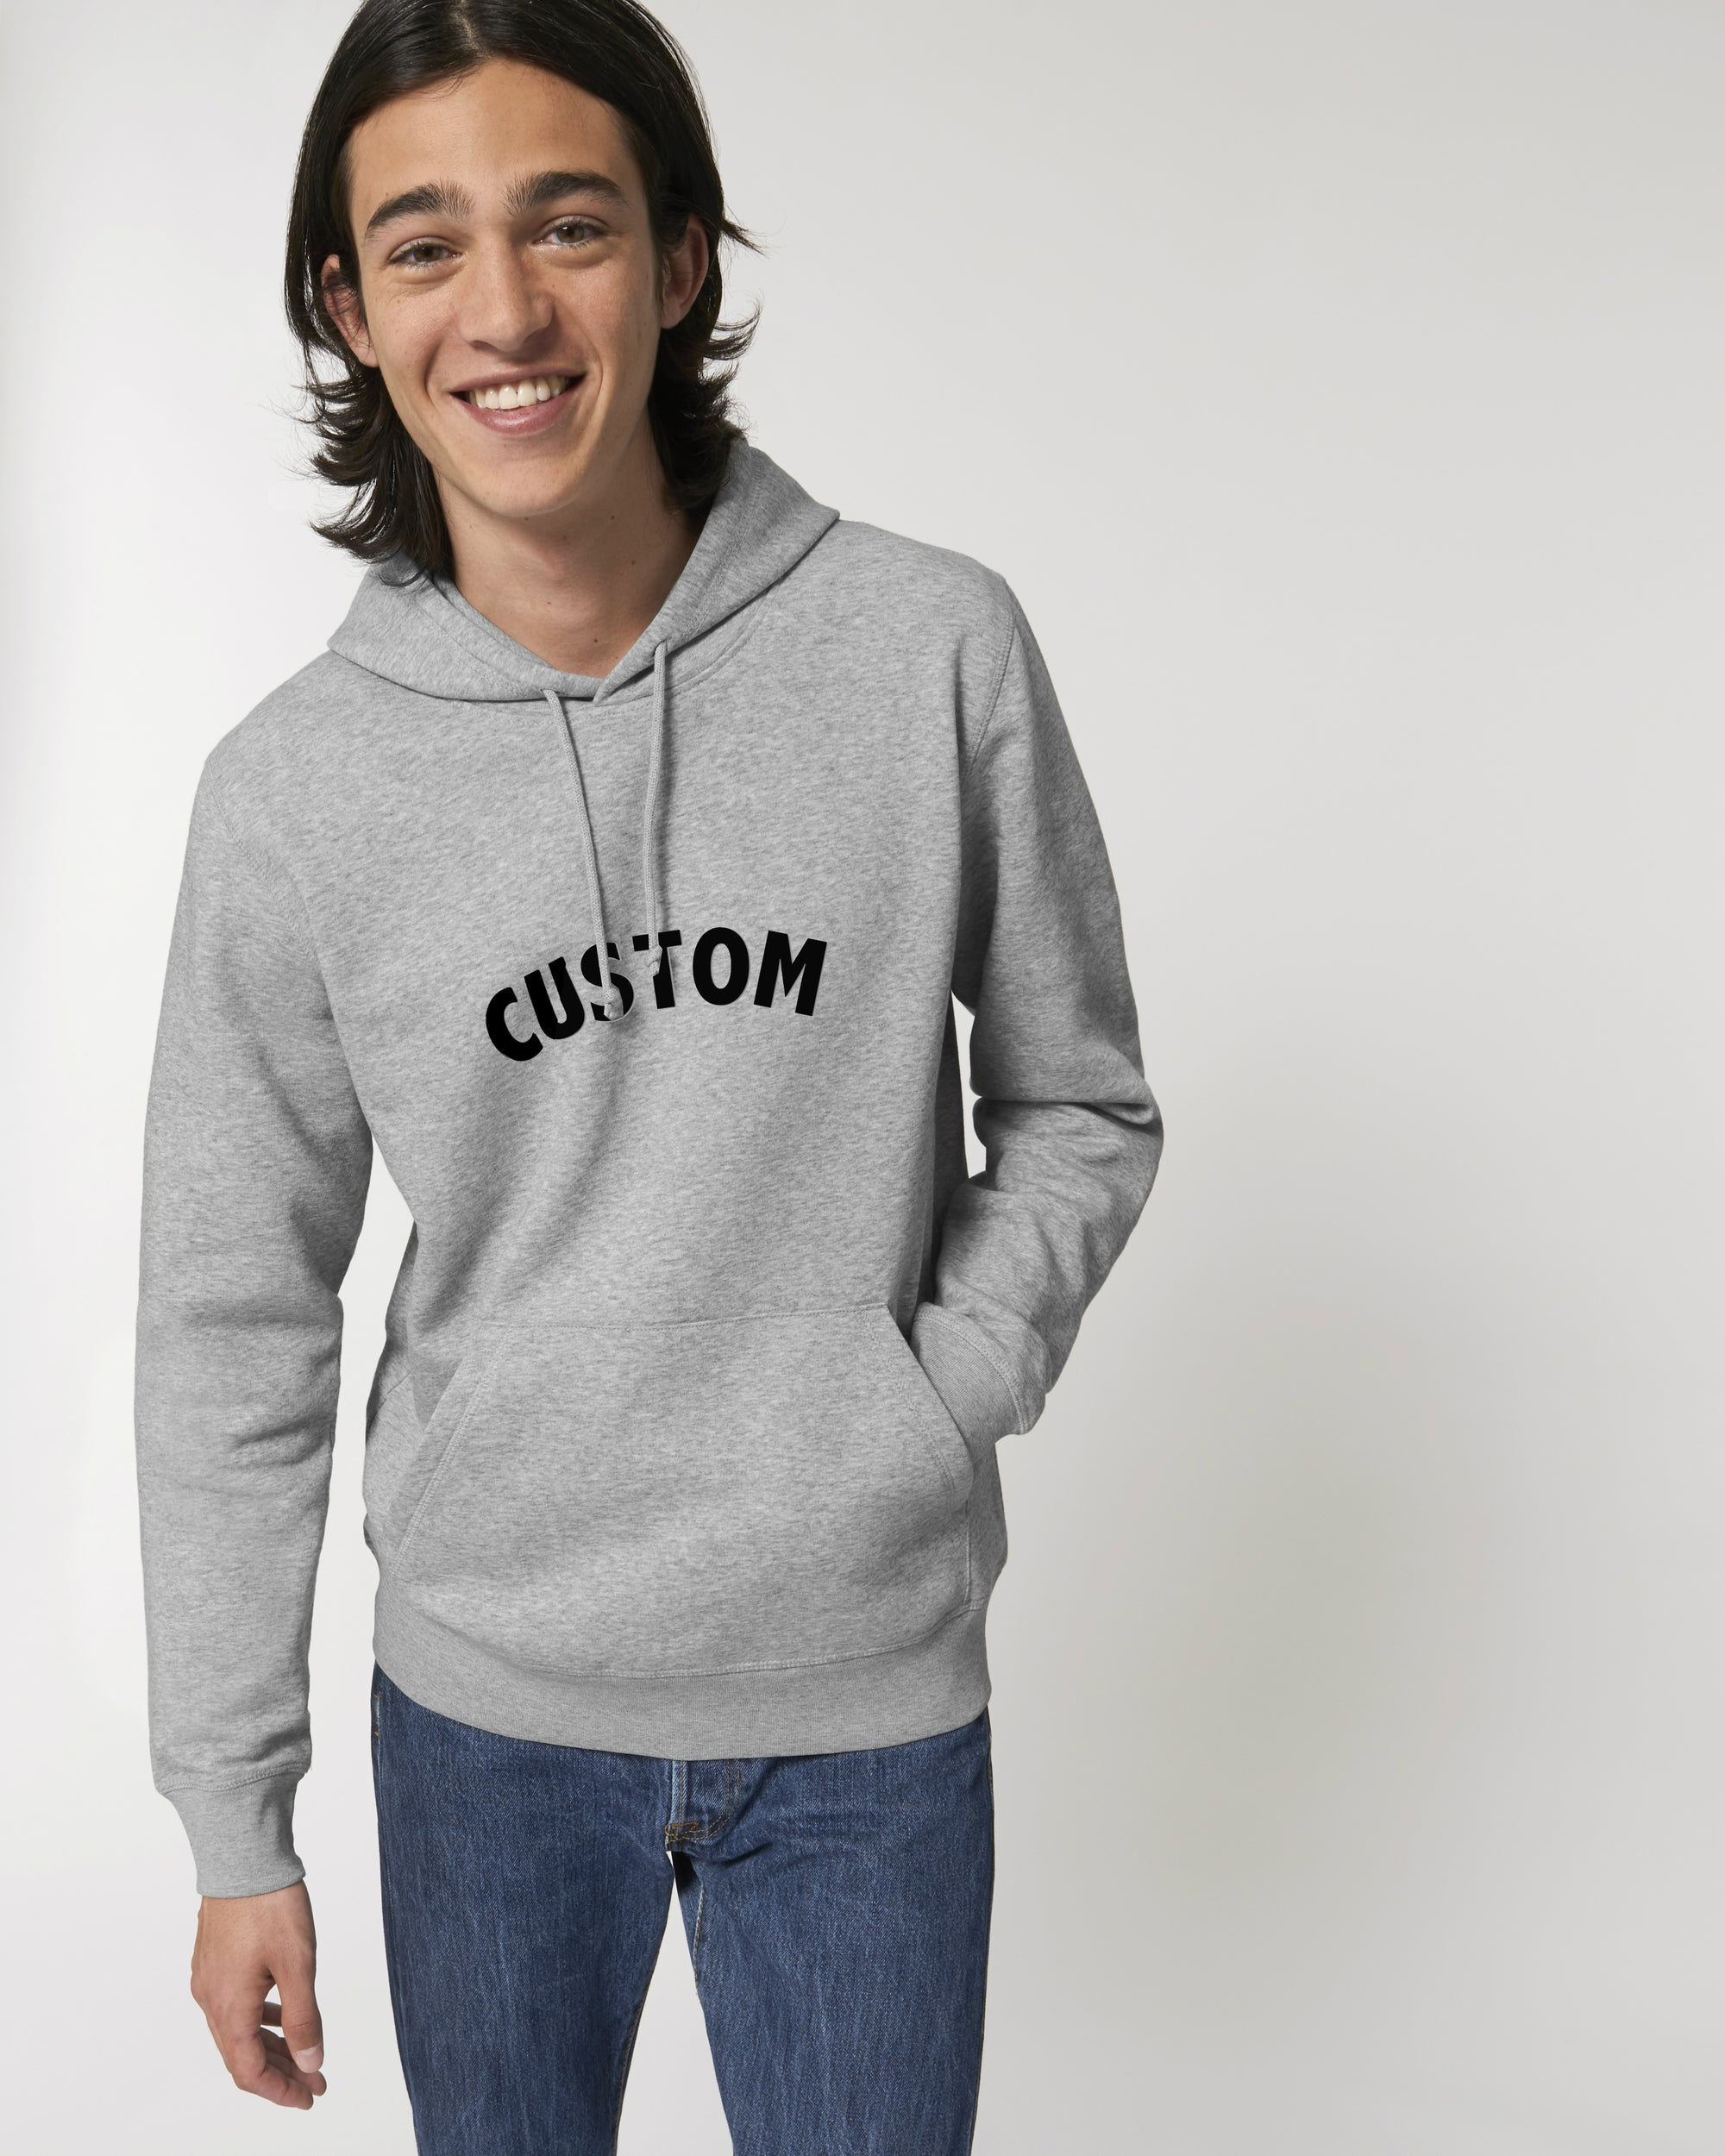 MEN'S MEDIUM FIT ORGANIC COTTON HOODIE - customisable centre chest embroidery